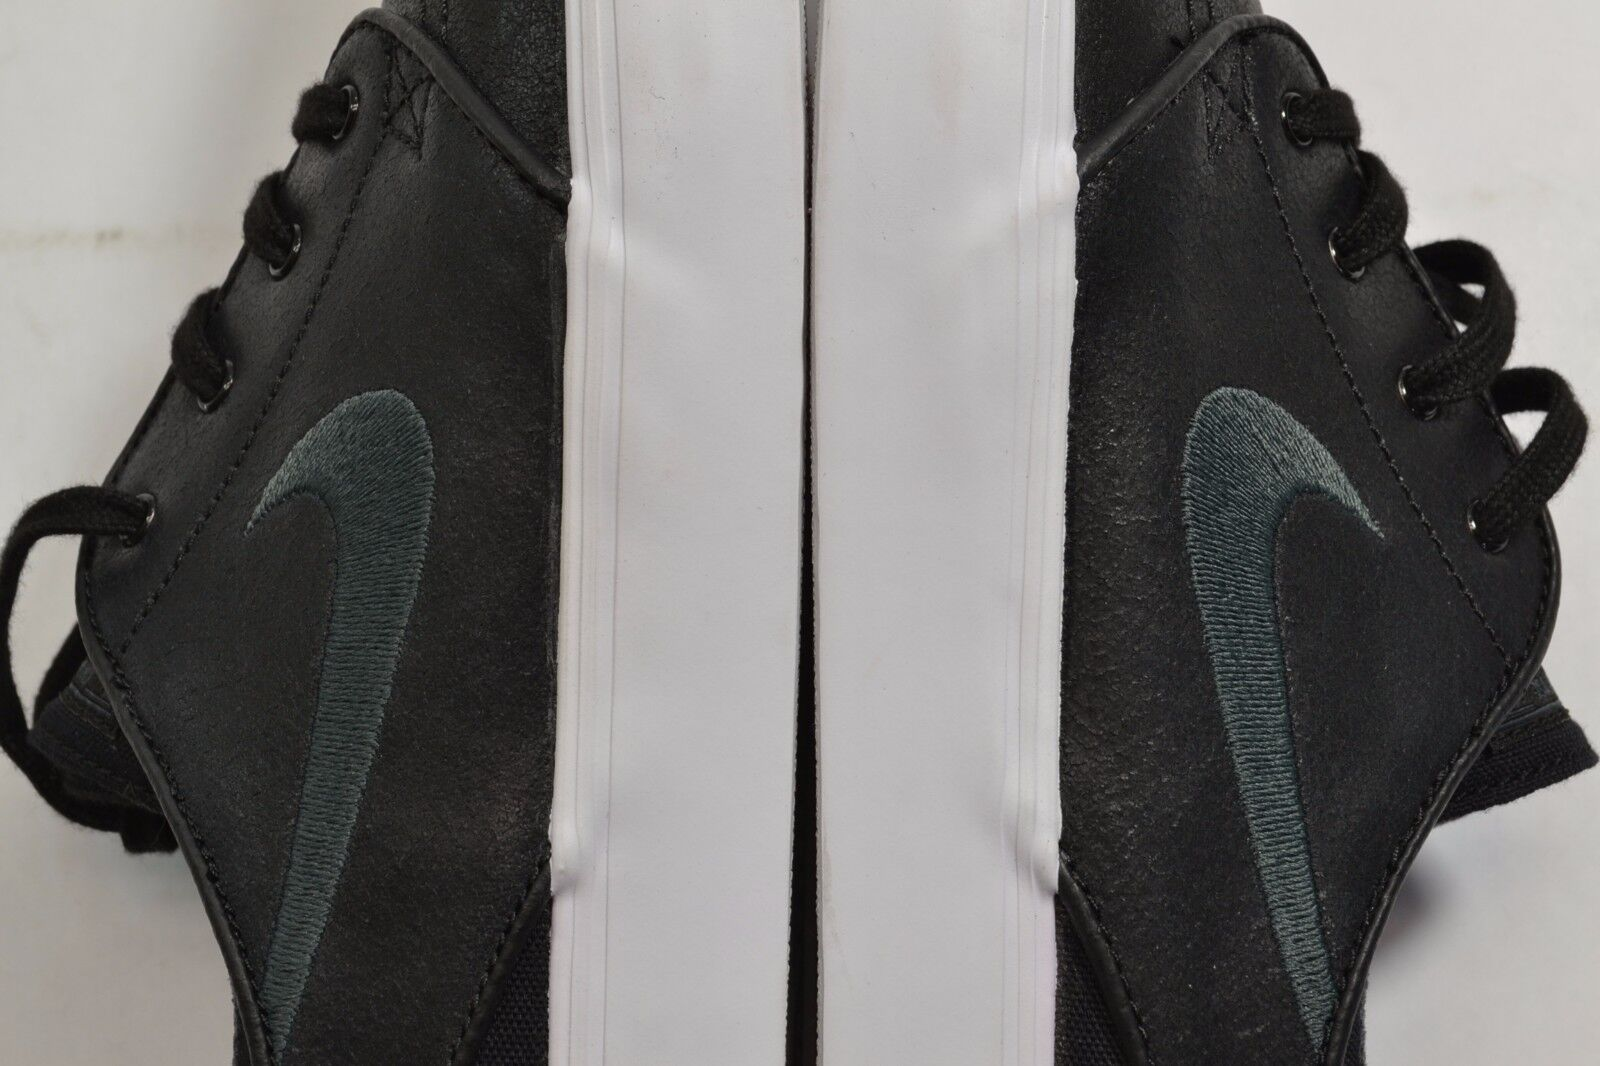 Nike ZOOM Discounted STEFAN JANOSKI L Negro Anthracite Skate Discounted ZOOM (311) Hombre Zapatos f9b7b5